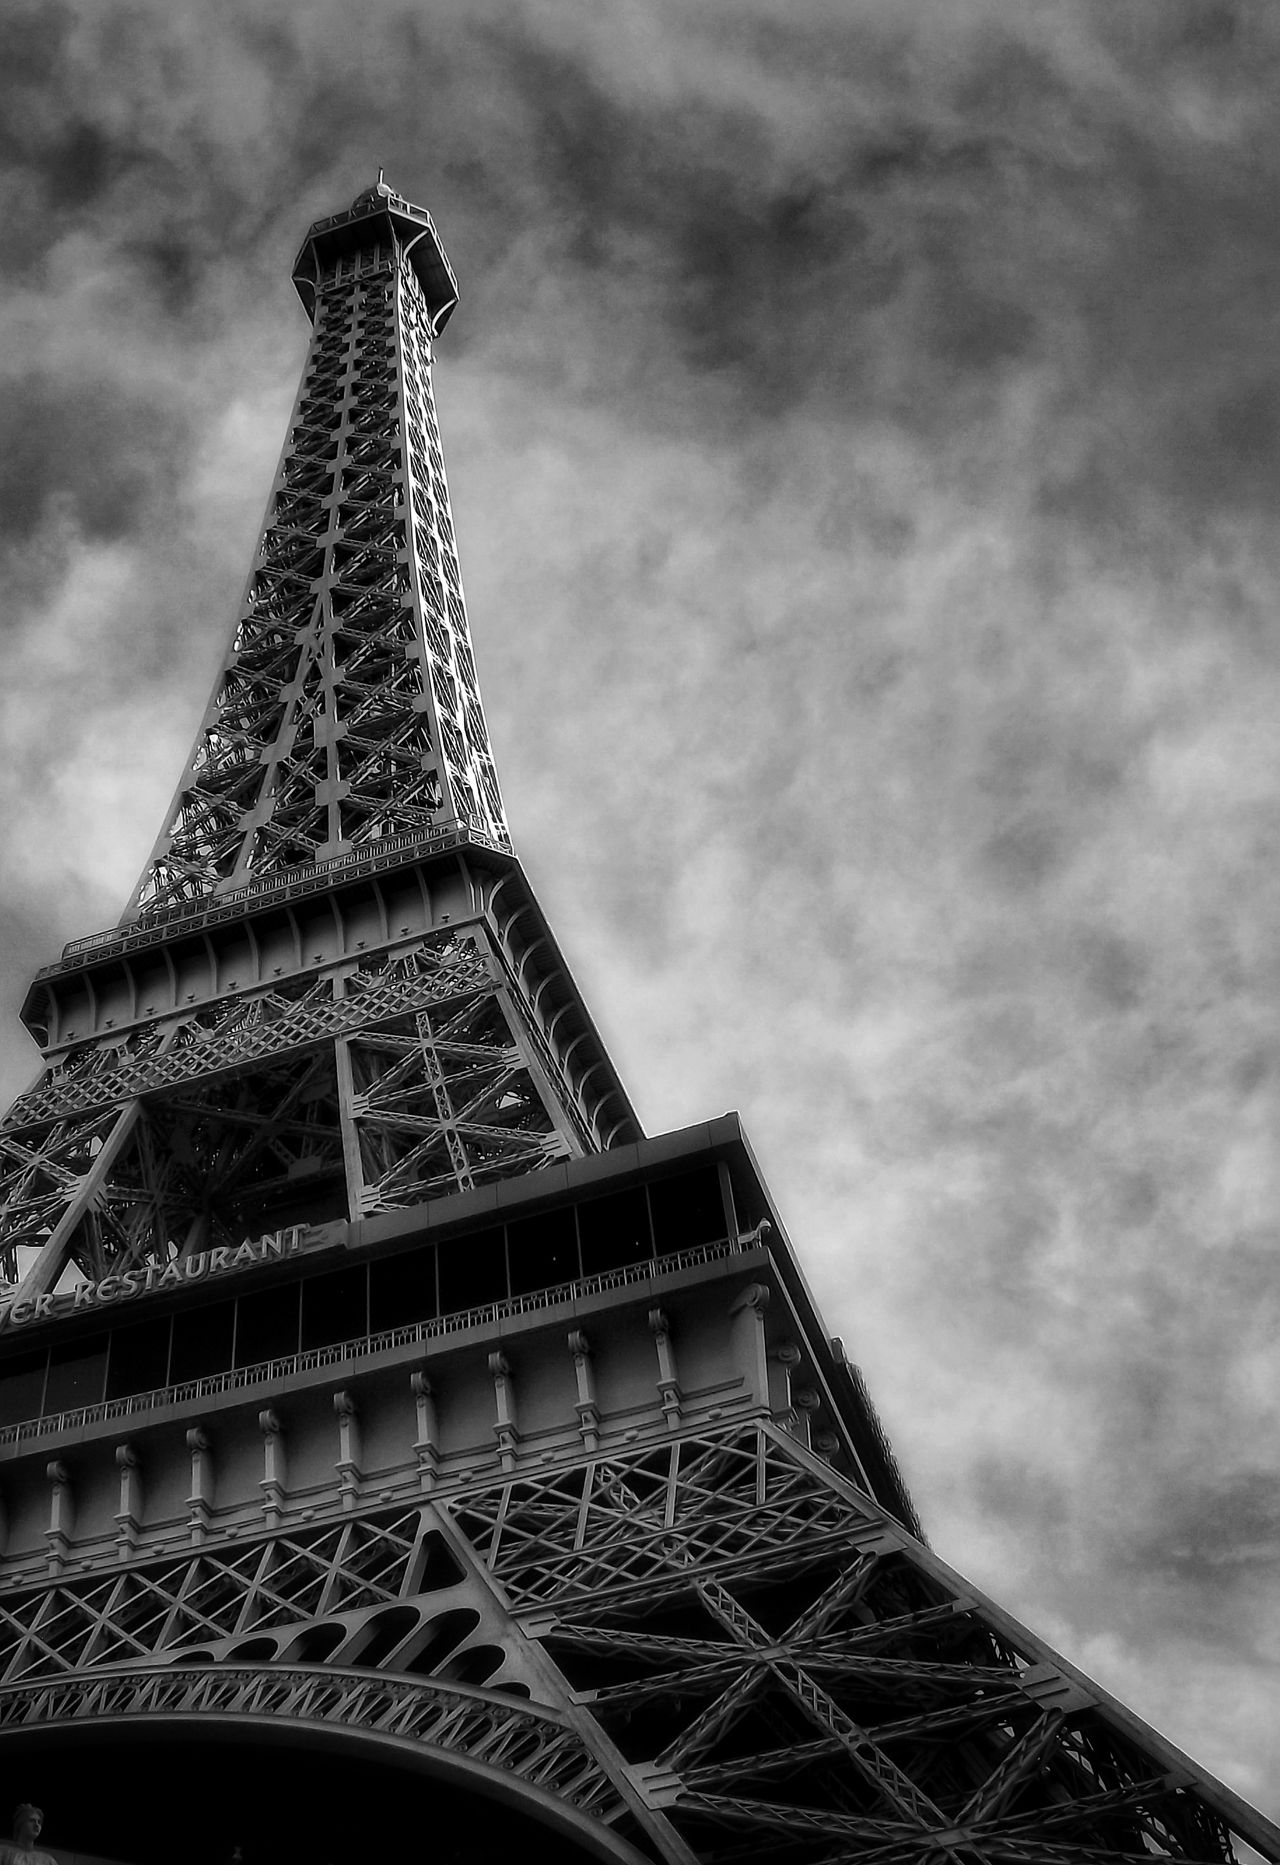 The Beautiful Eiffel Tower Las Vegas Nevada Low Angle View Cloud - Sky No People Architecture Cultures Landscape Photography Las Vegas, Nevada Beautiful View On A Cold Day Las Vegas Landscape_photography Malephotographerofthemonth Building Feature Building Photography Las Vegas Hotel Vegas  Built Structure Building Exterior Statues And Monuments Portrait Fujifilm Eiffel Tower Replica Las Vegas Eiffel Tower Las Vegas Documentary Photography